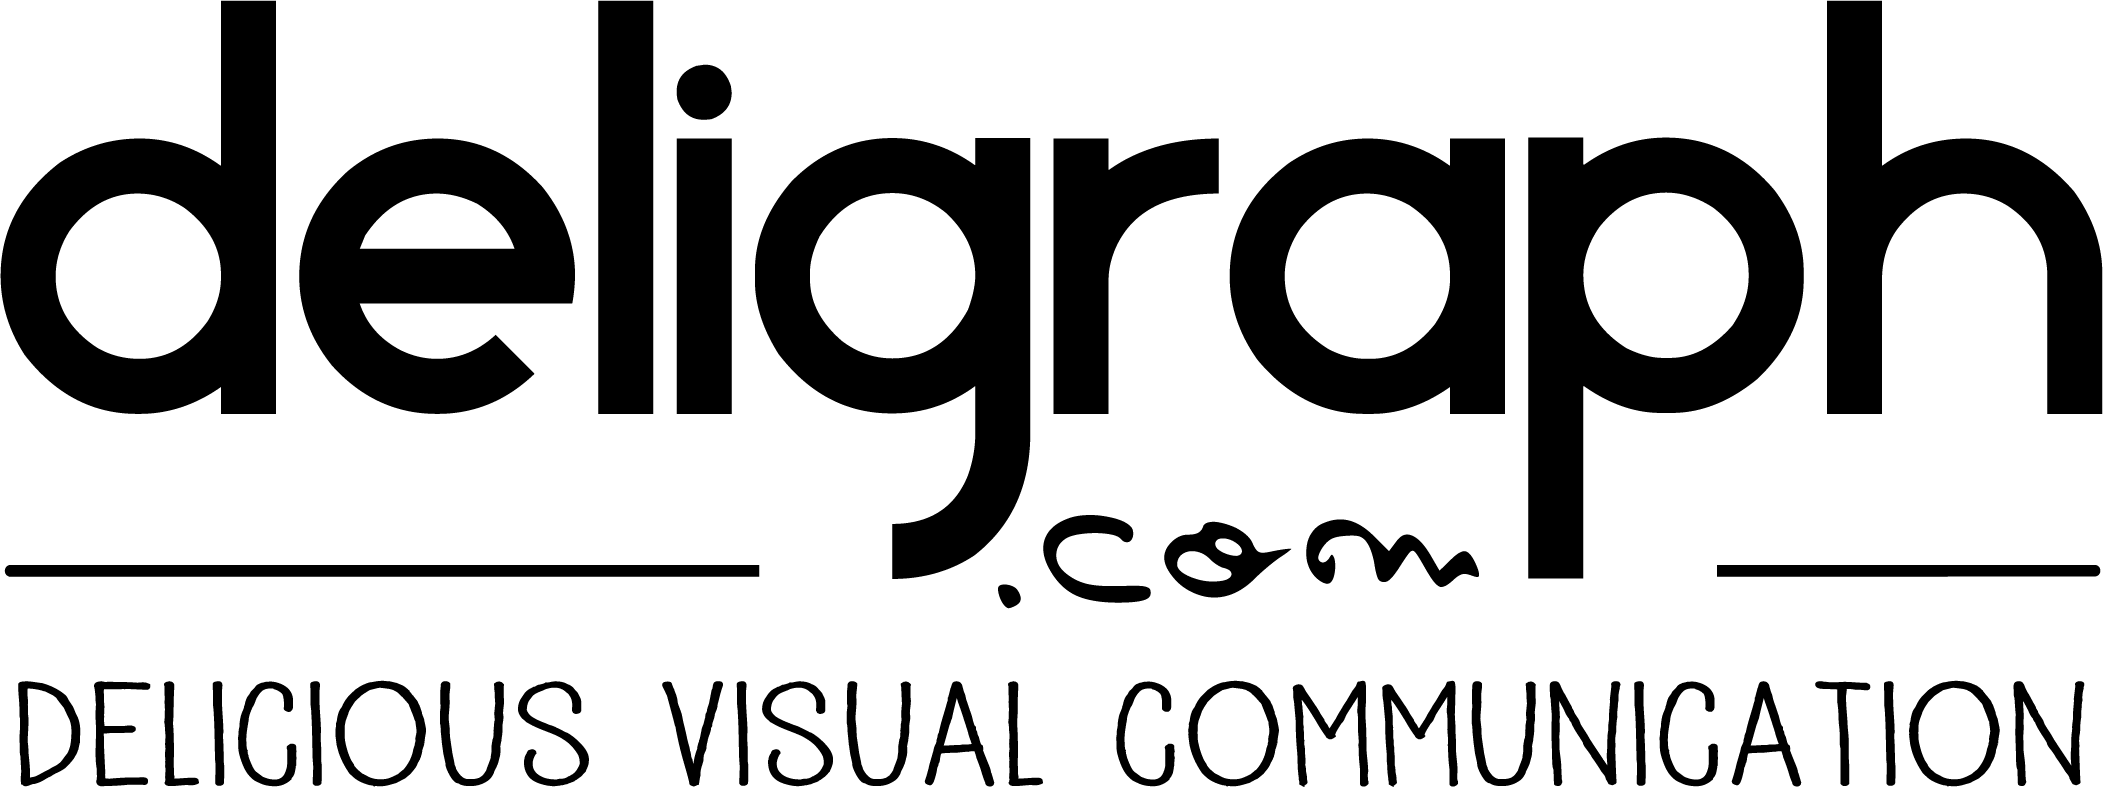 Logo - Agence de communication visuelle | Deligraph